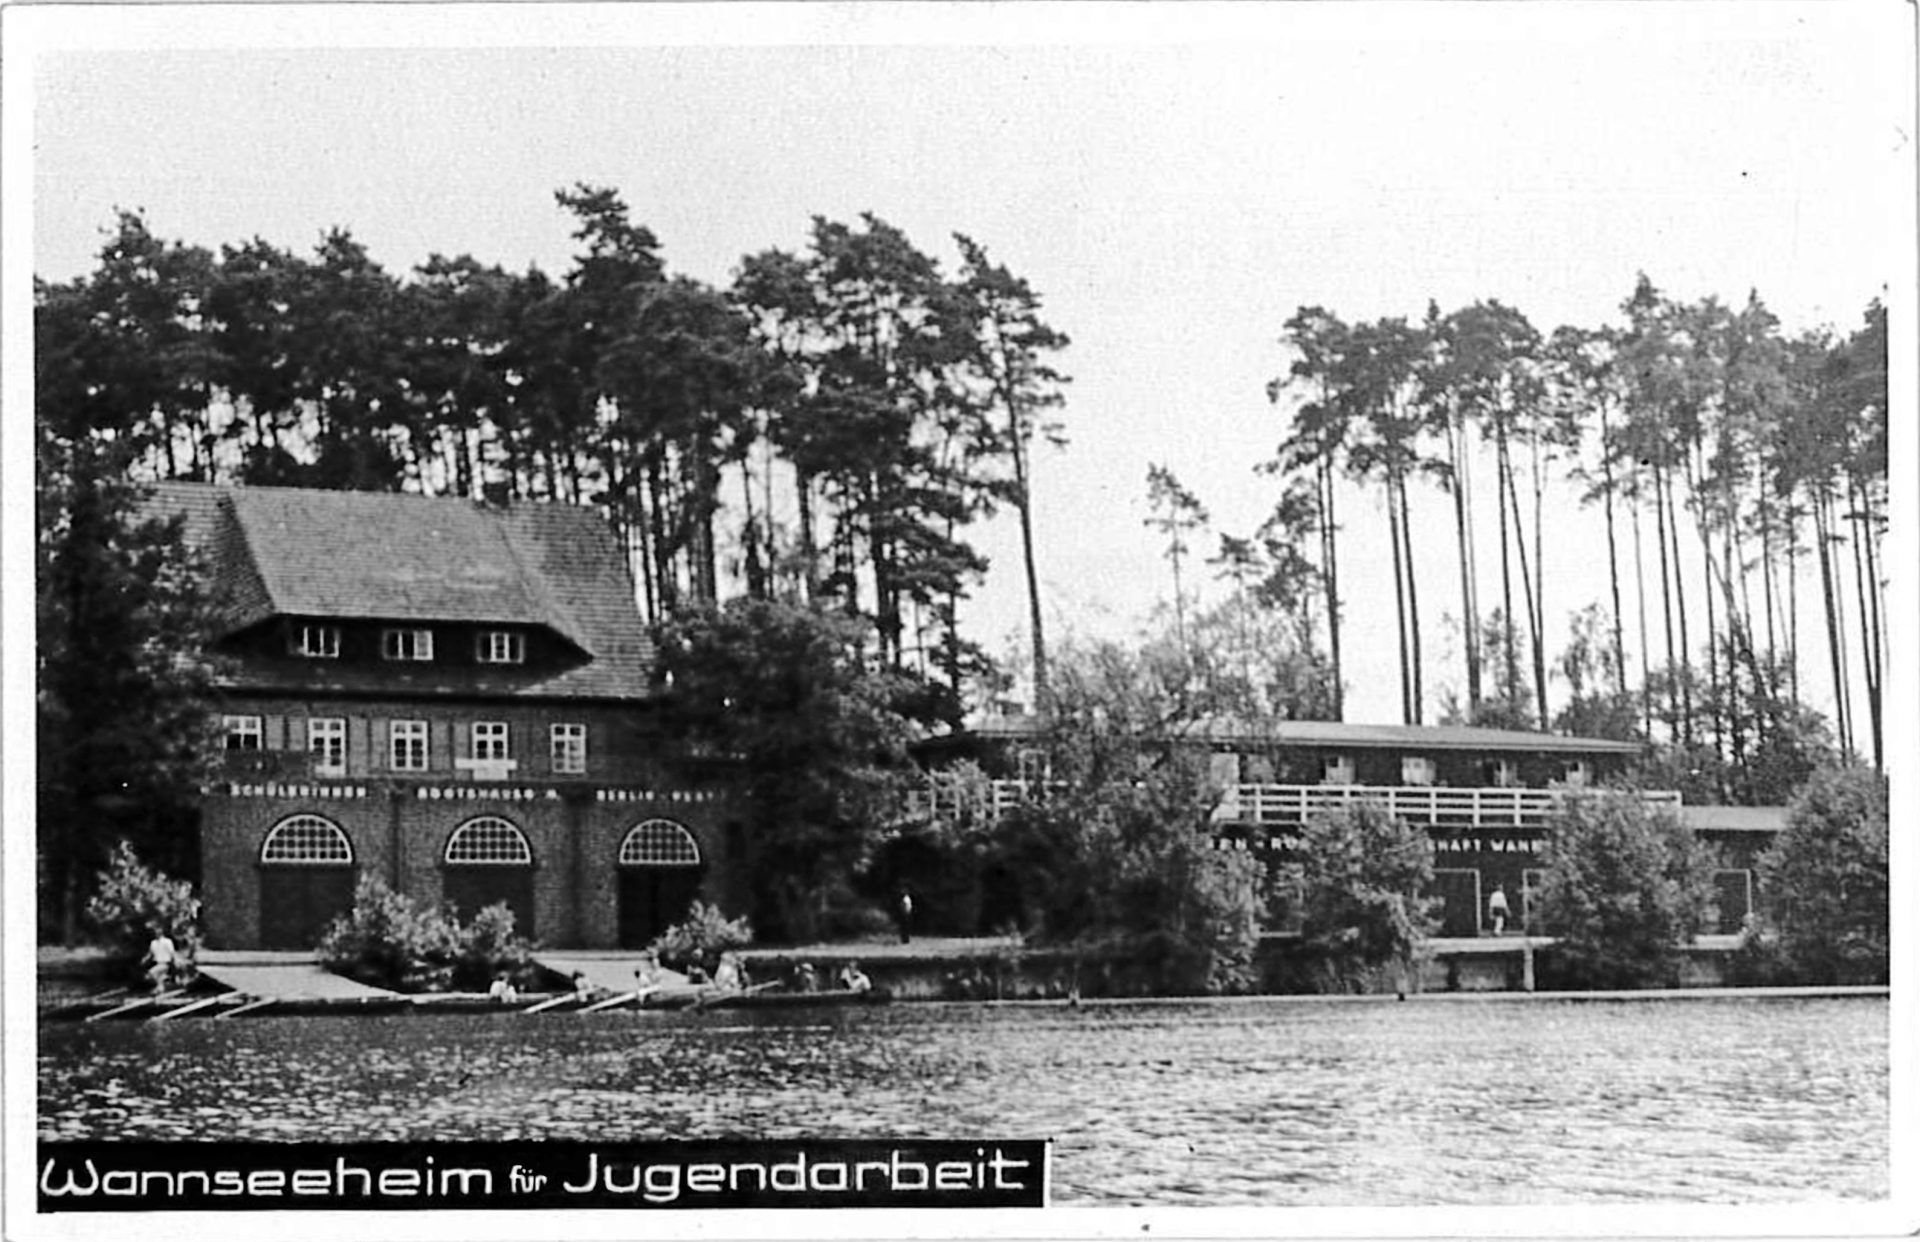 Camp of Wannsee Jugendleiterschule 1947-51, Bismakrstr